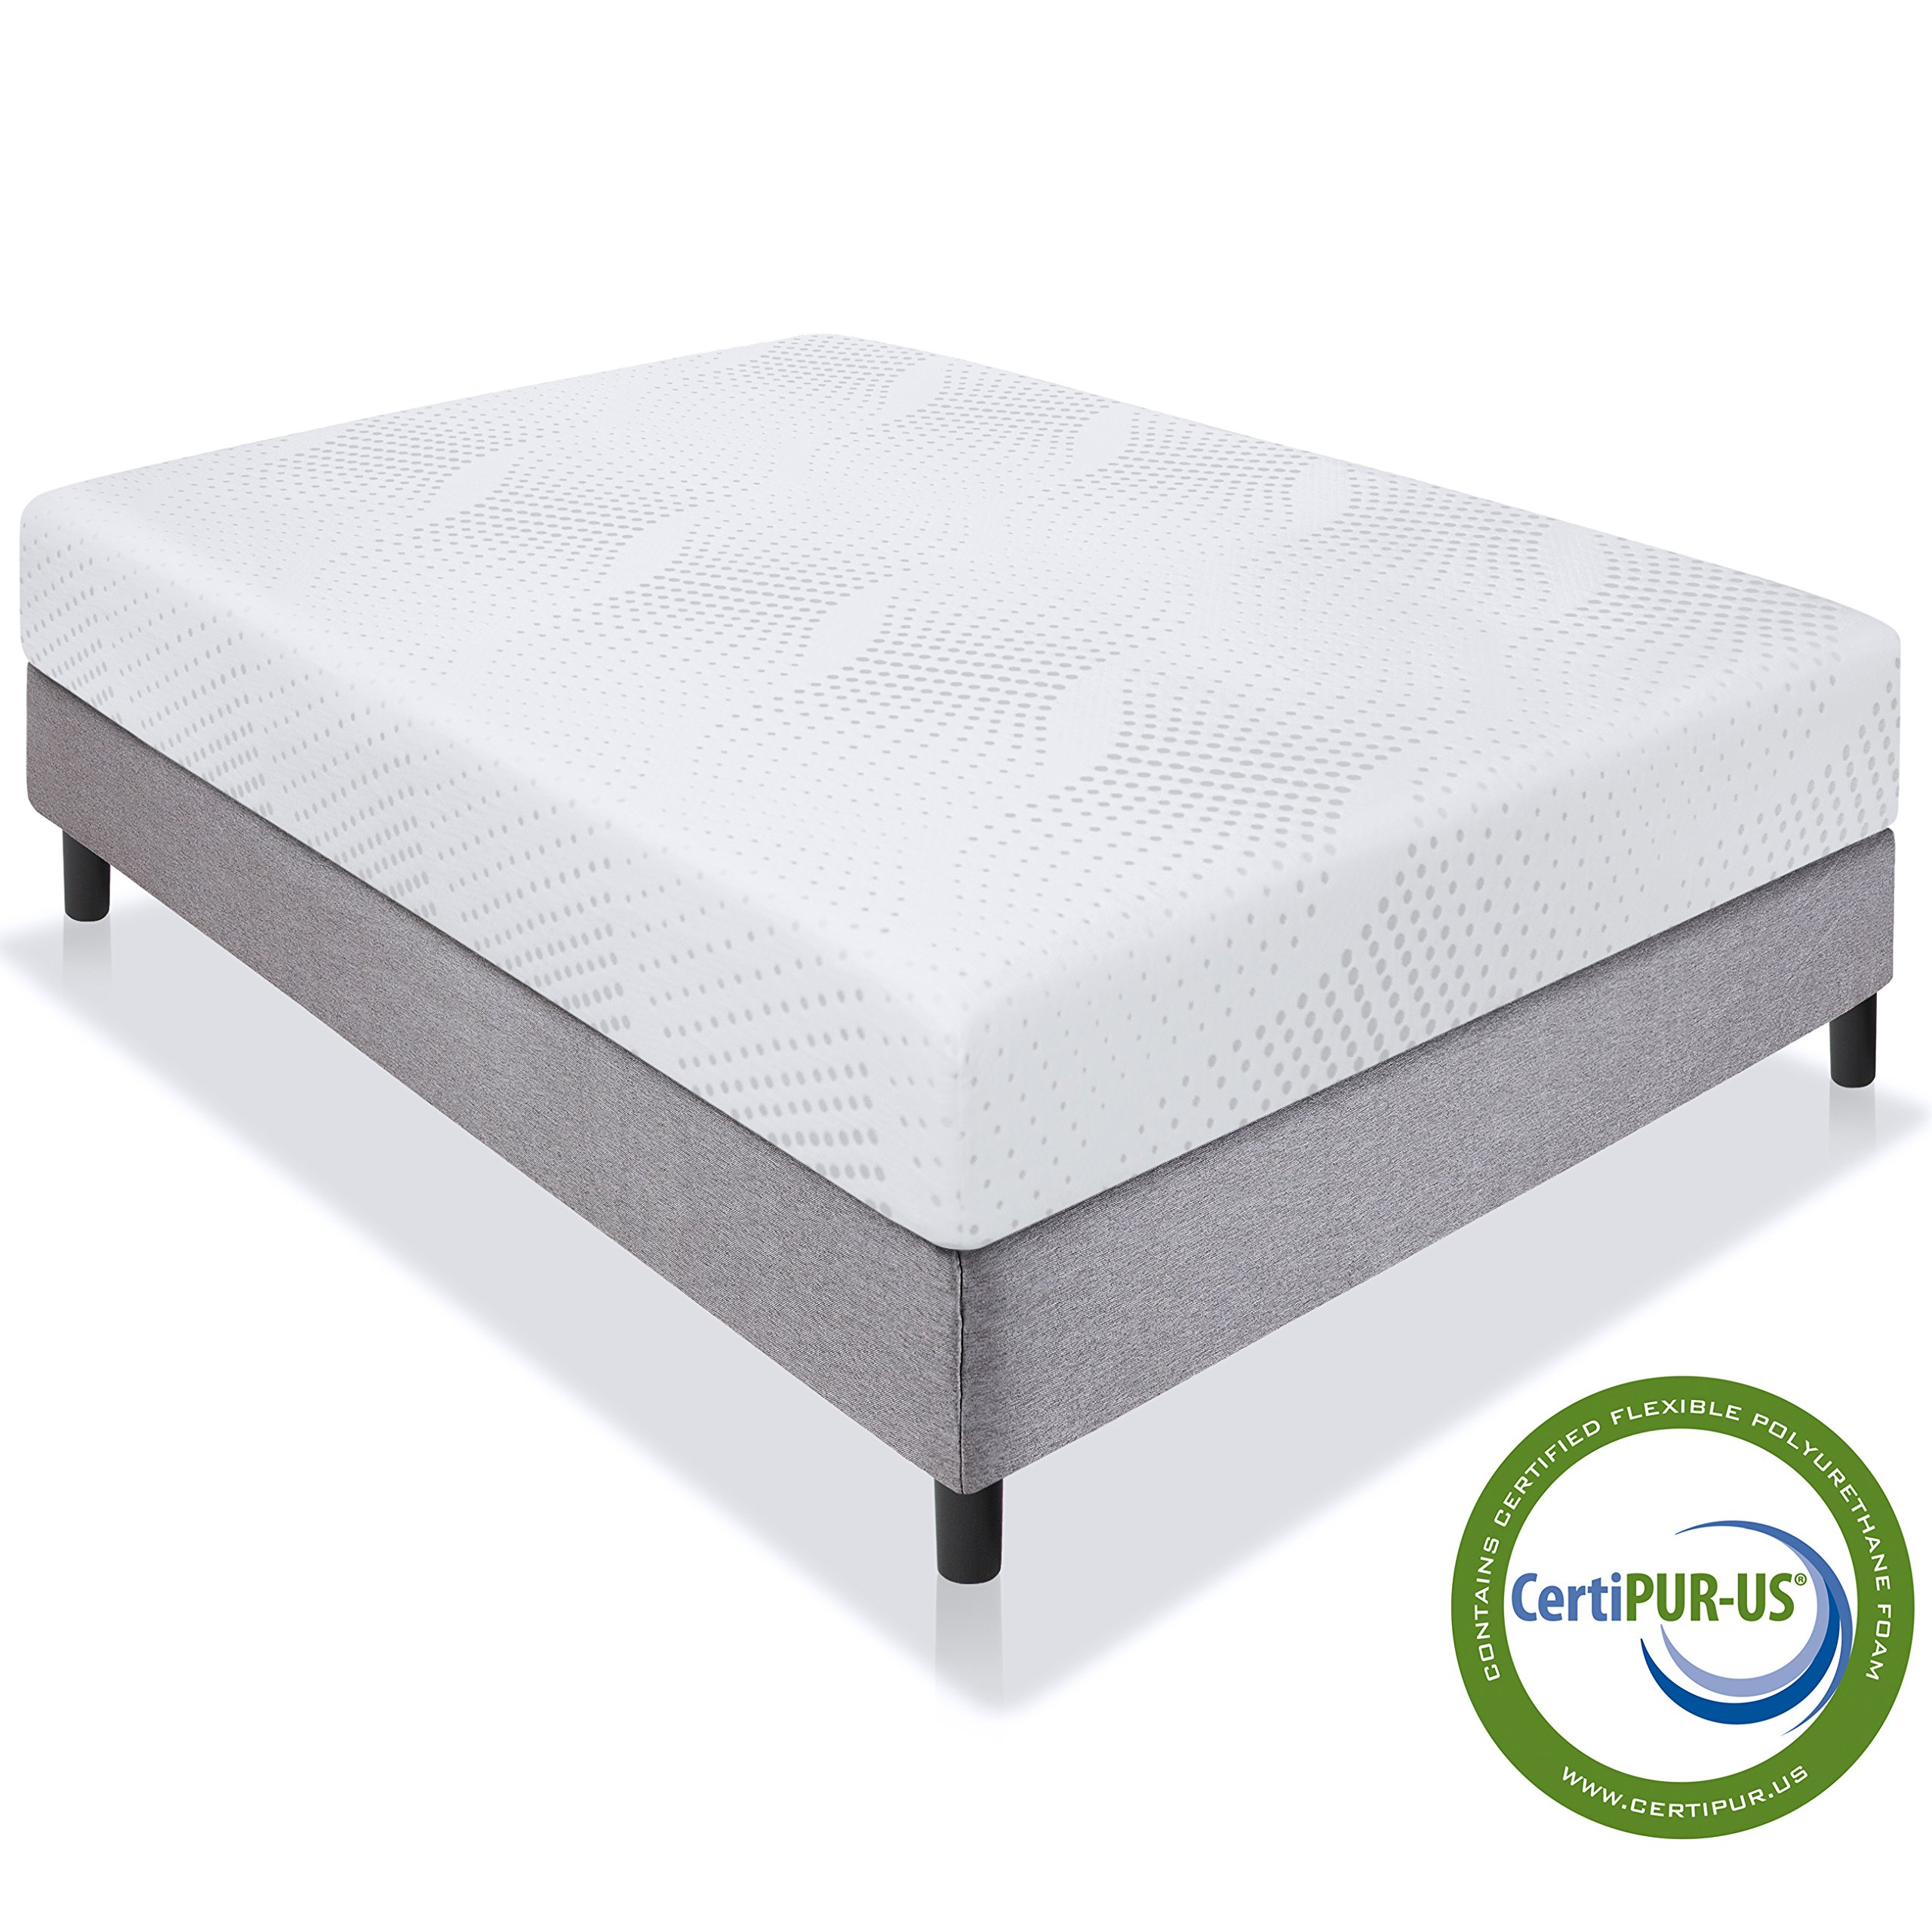 Best Choice Products 10'' Dual Layered Memory Foam Mattress Queen- CertiPUR-US Certified Foam by Best Choice Products